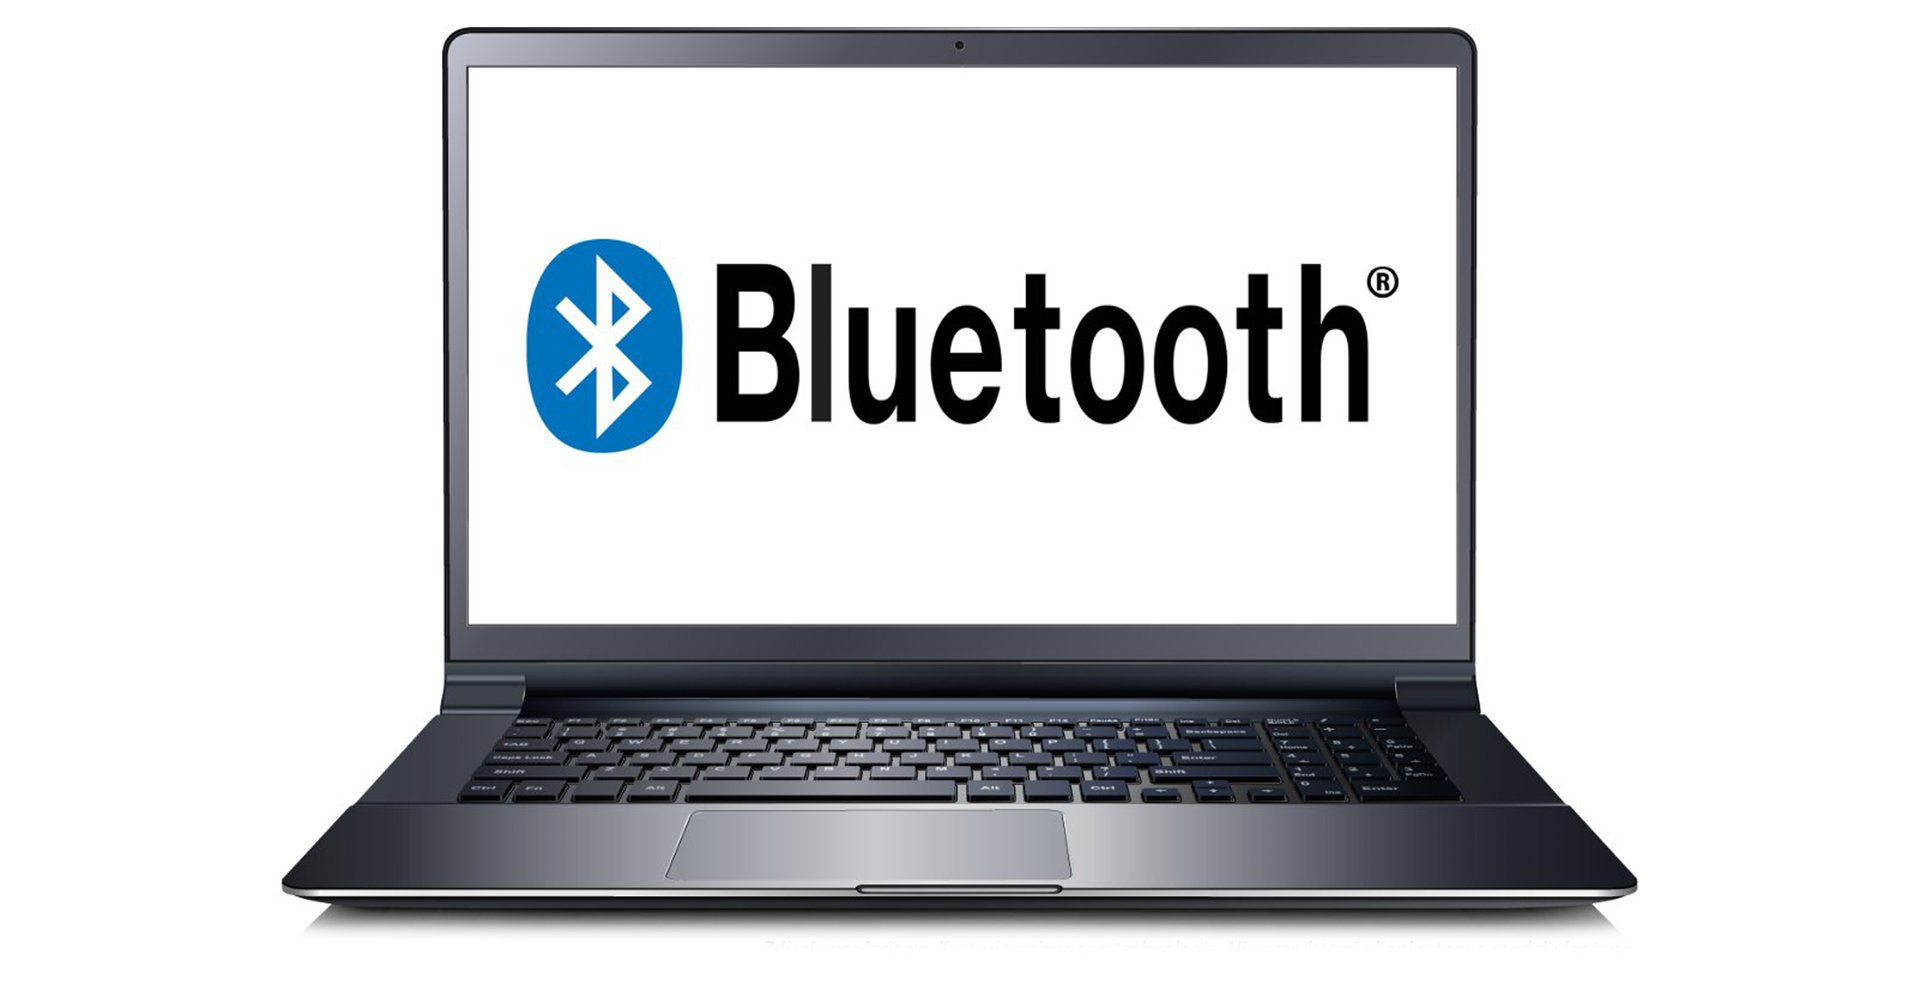 Dell Latitude E6430 i5-3320M 8GB 240SSD WIN7Pro                             Bluetooth